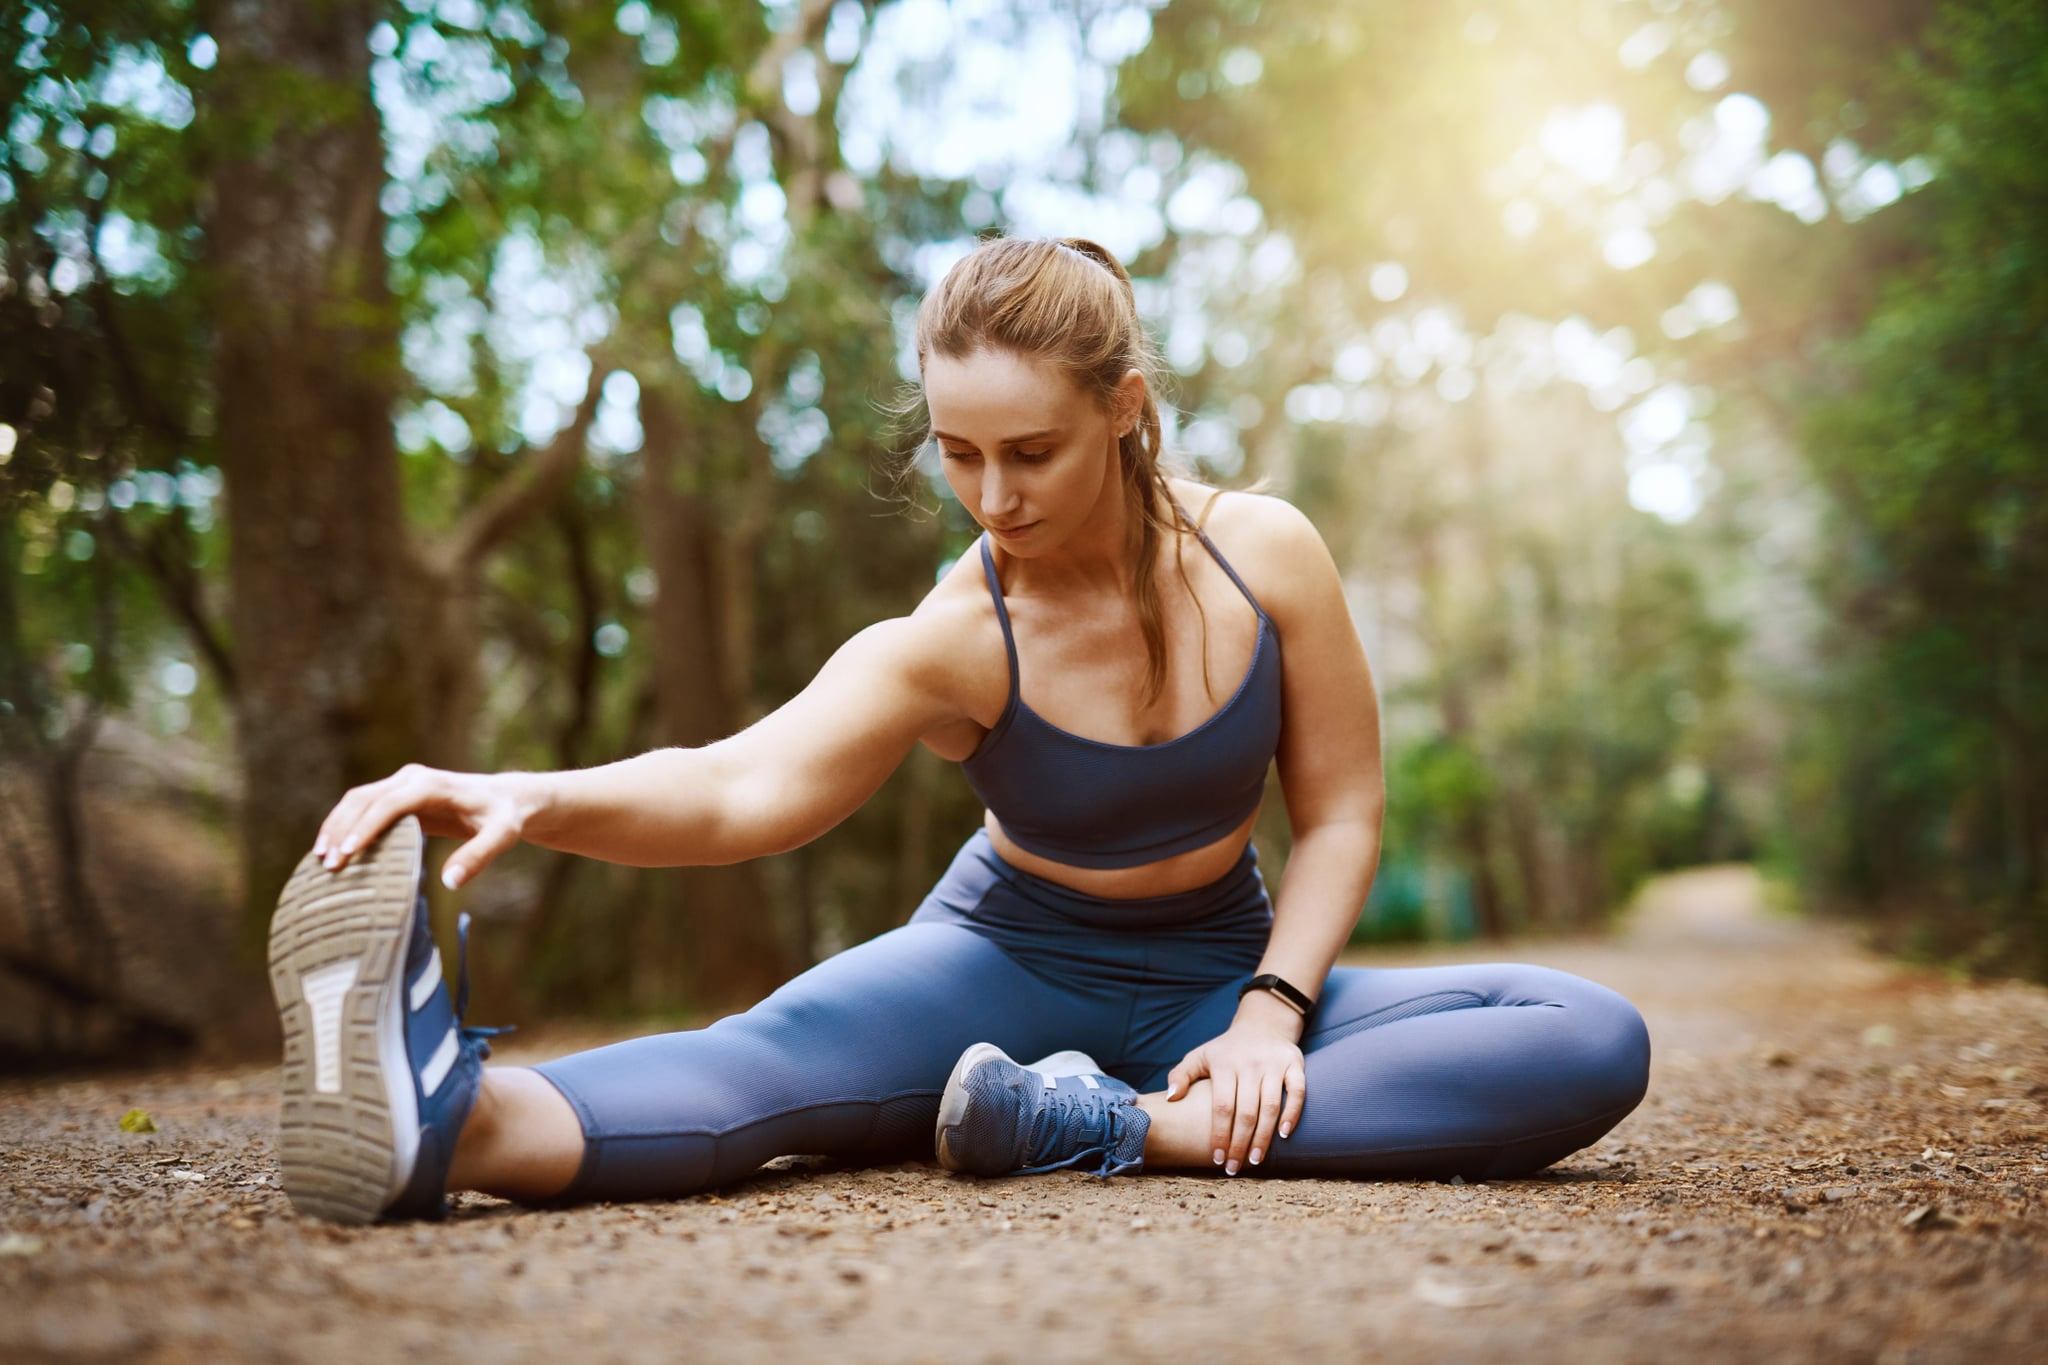 Shot of a sporty young woman stretching her legs while exercising outdoors